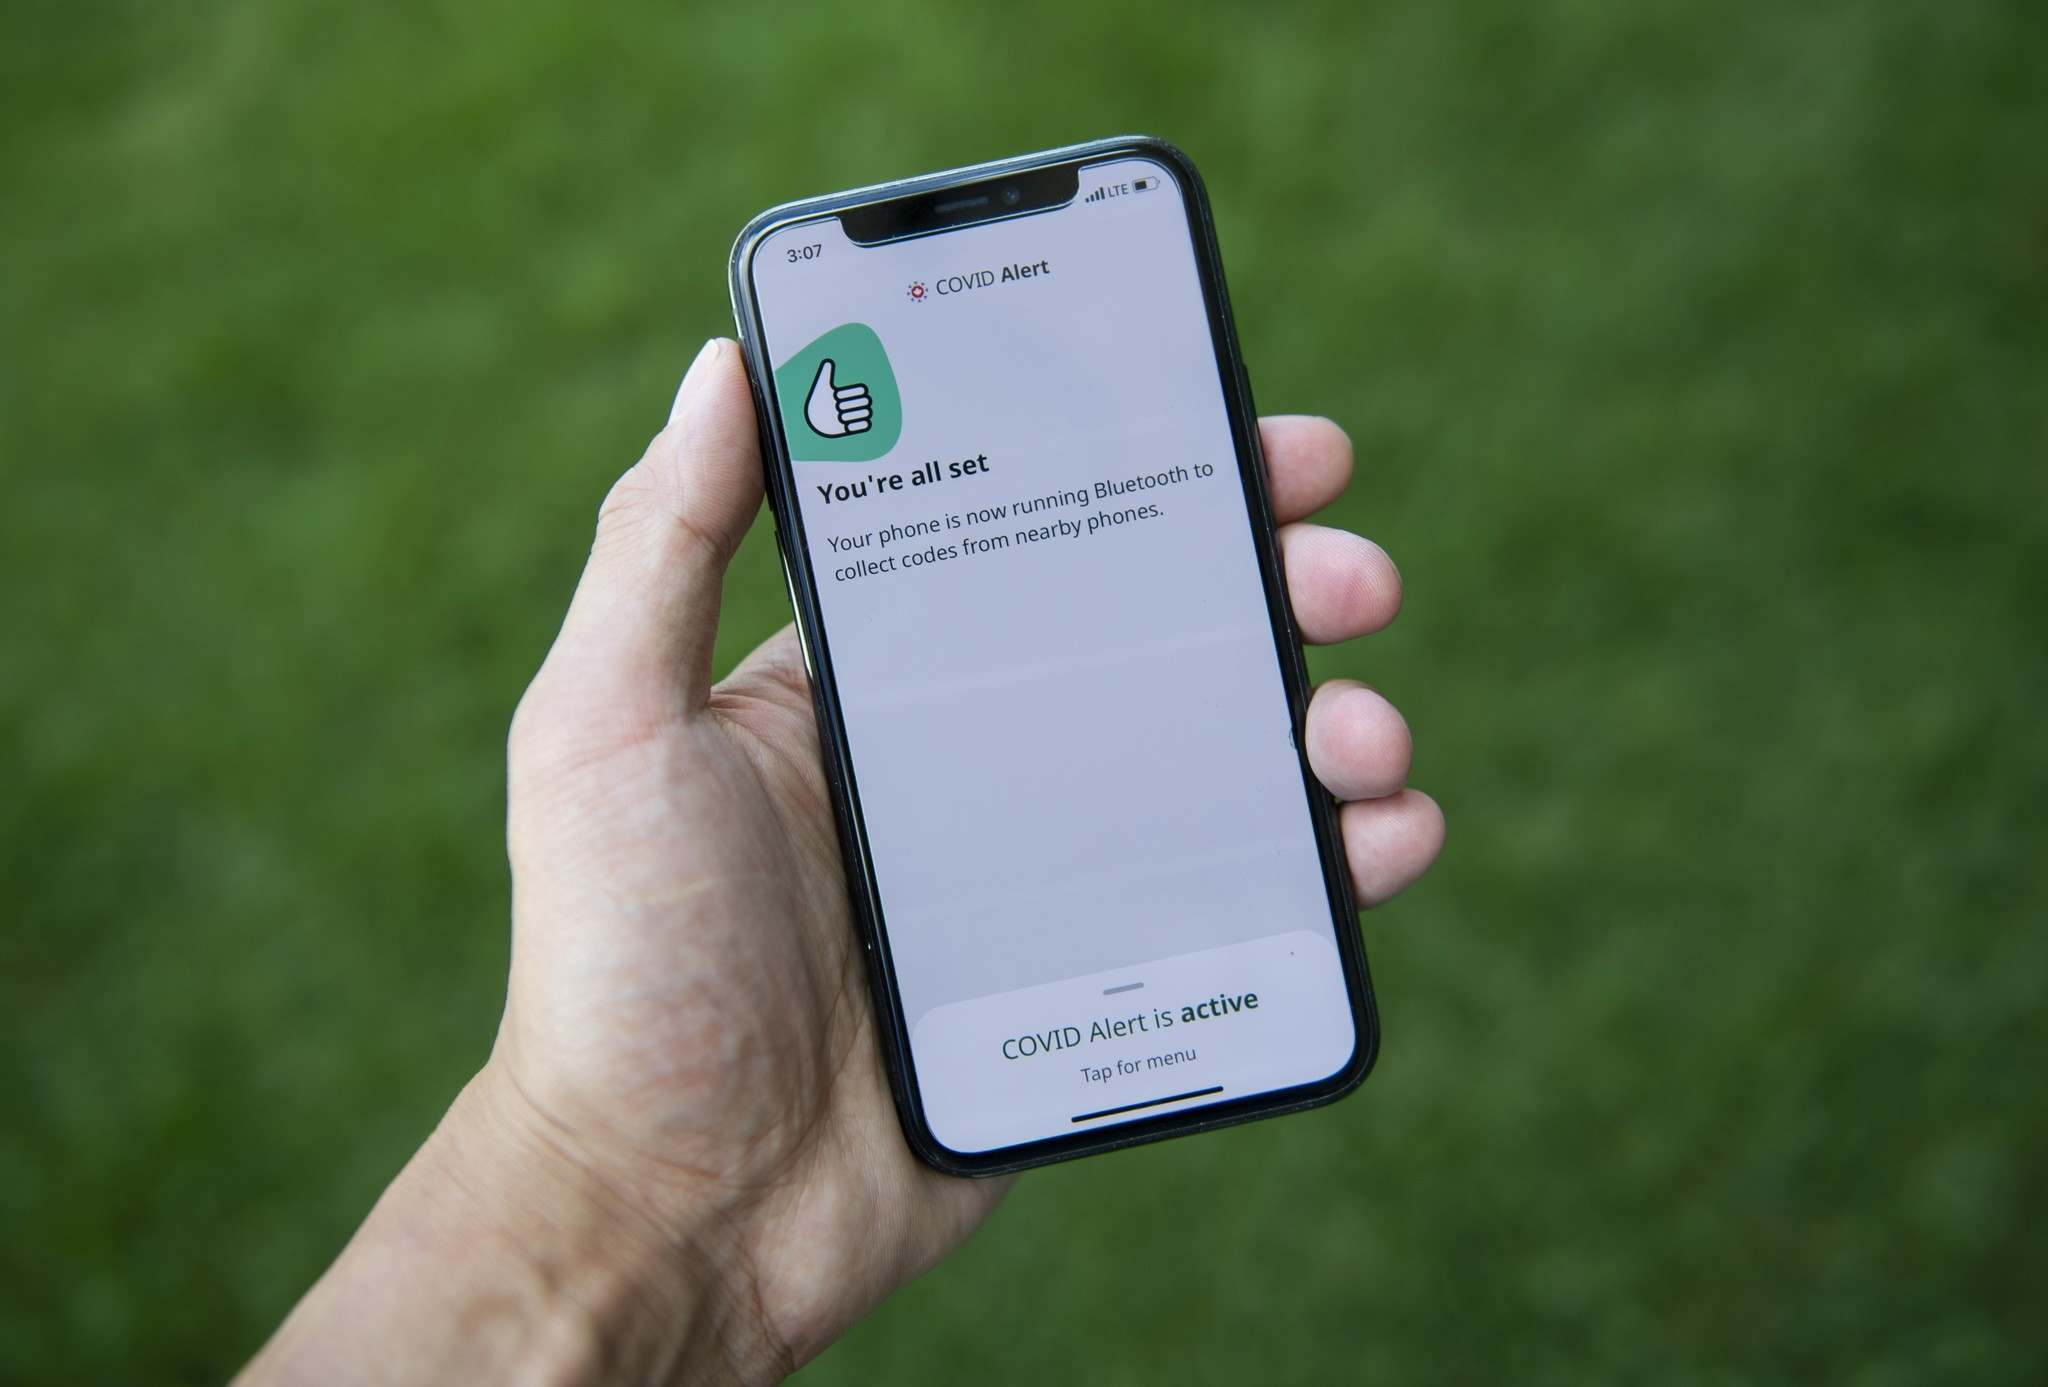 The app tracks the locations of phones relative to other phones, and notifies users if they have been in proximity to another app user who has tested positive for COVID-19. (Justin Tang / The Canadian Press files)</p>